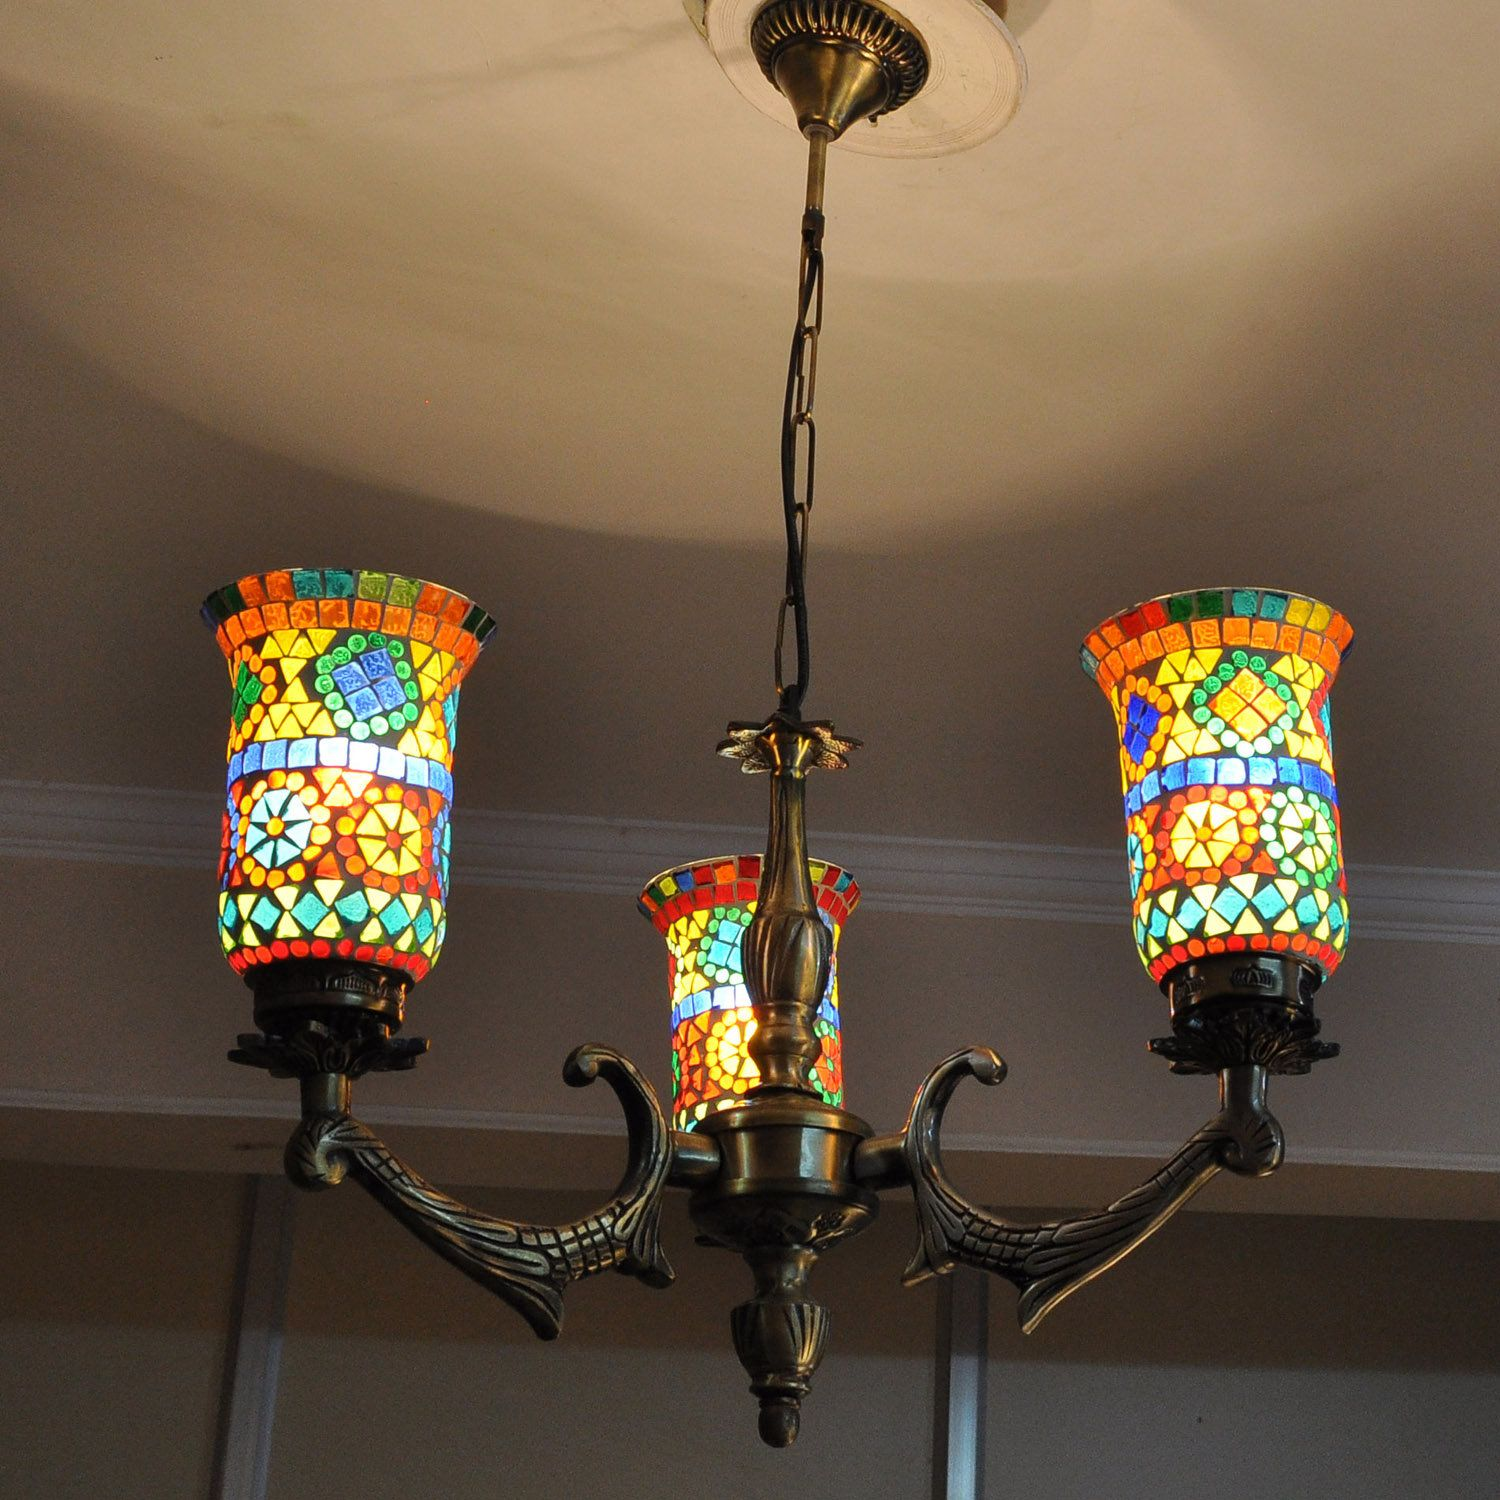 Indian Chandelier 3Light Ceiling Mounted Fixture Fitting